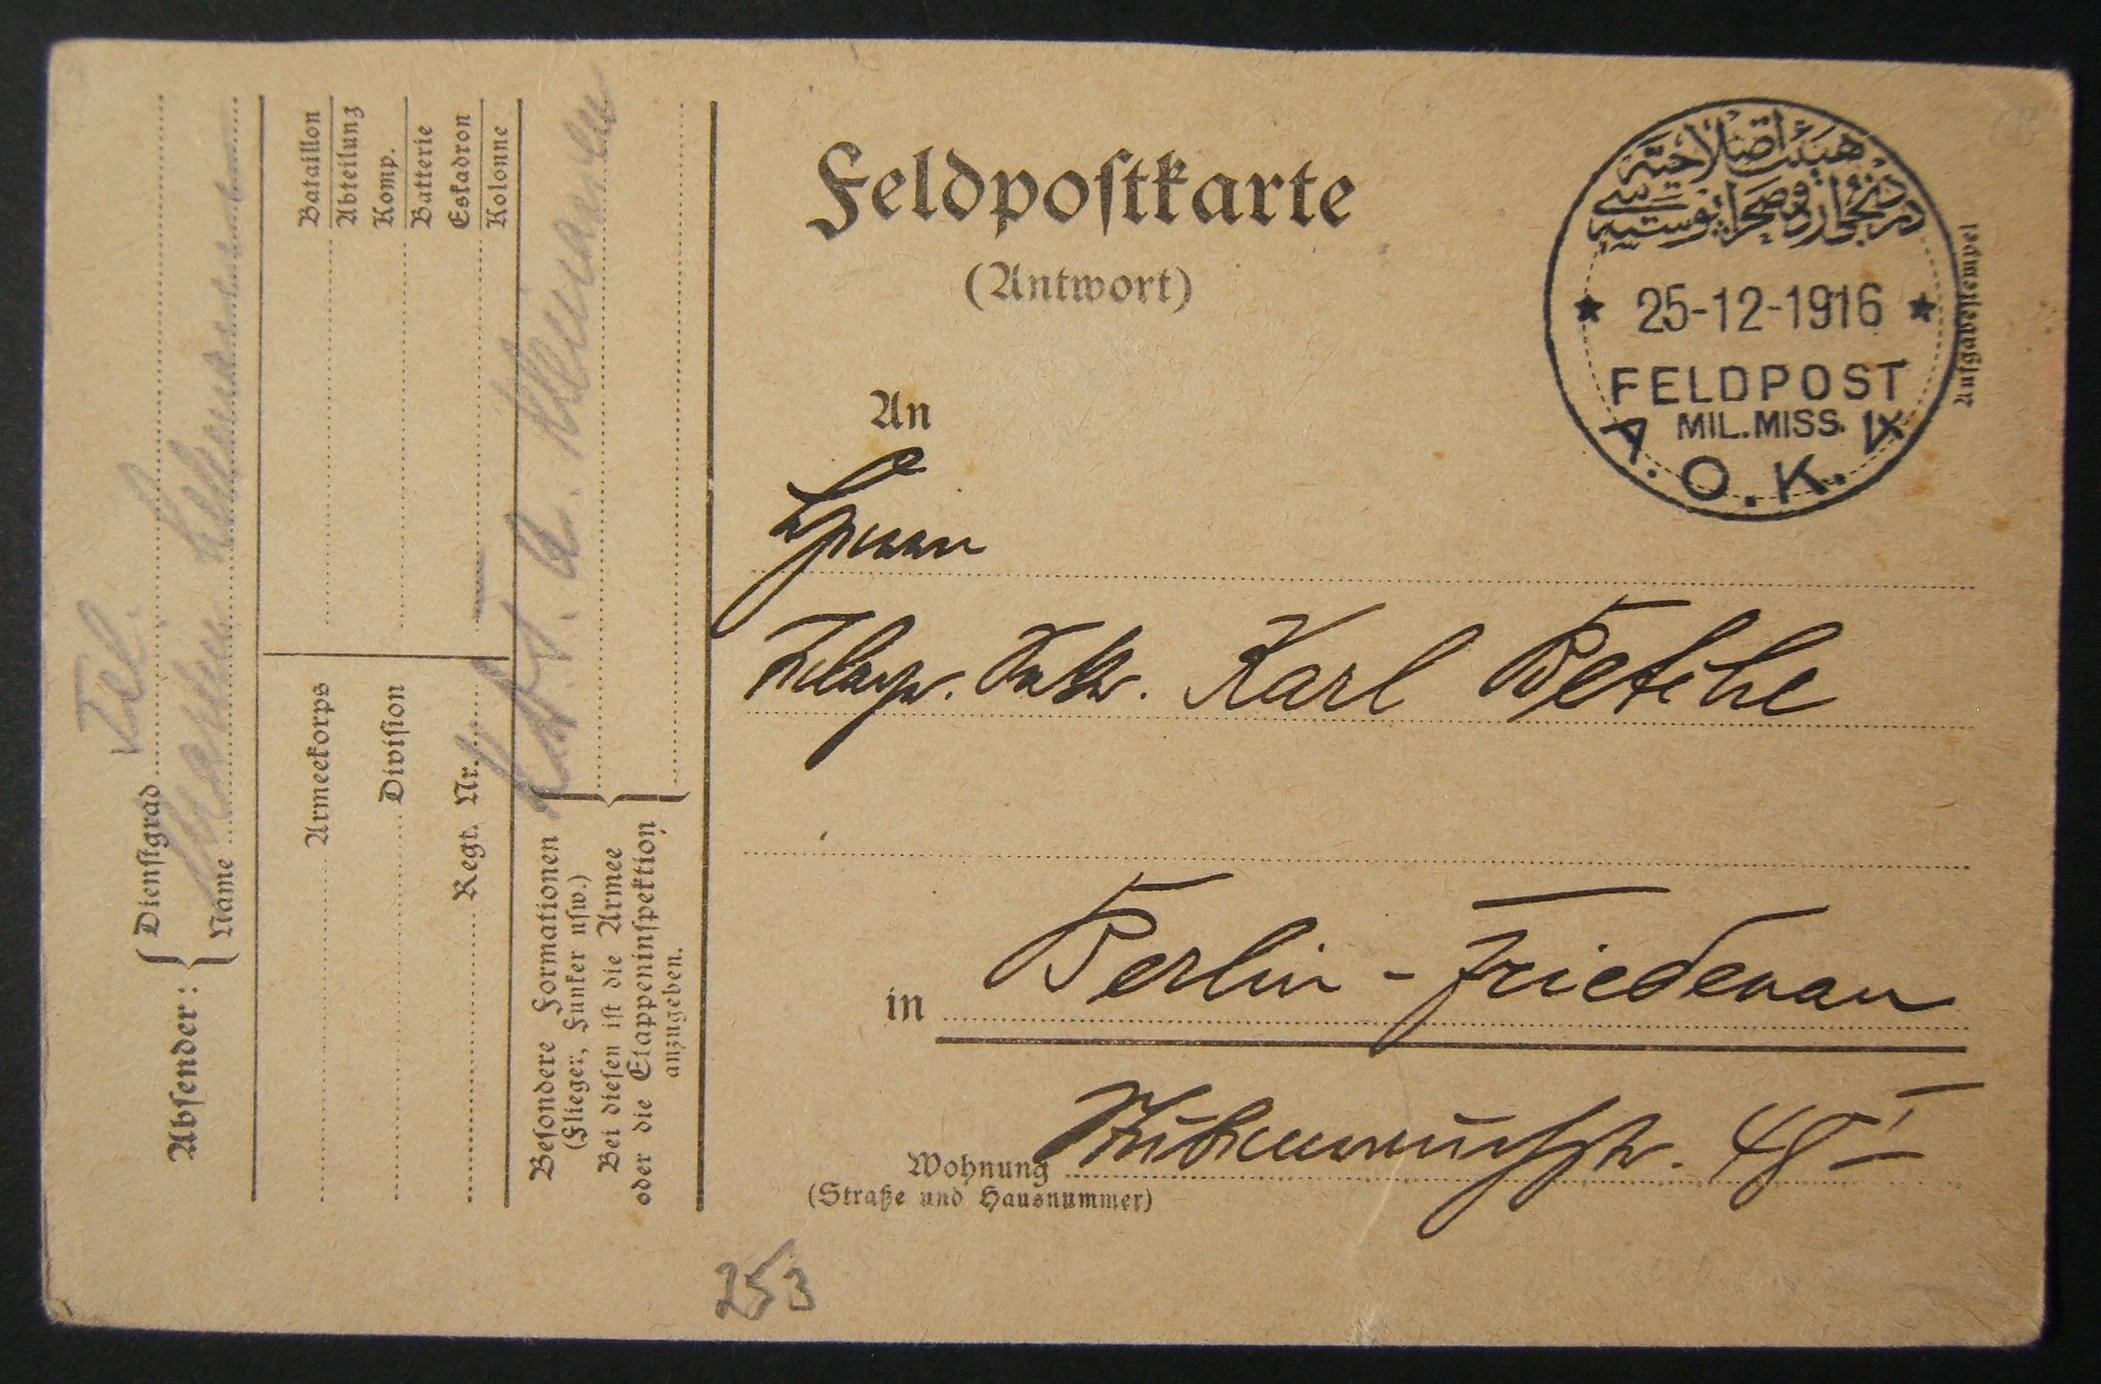 WWI German military post: 25-12-1916 (Christmas day) official